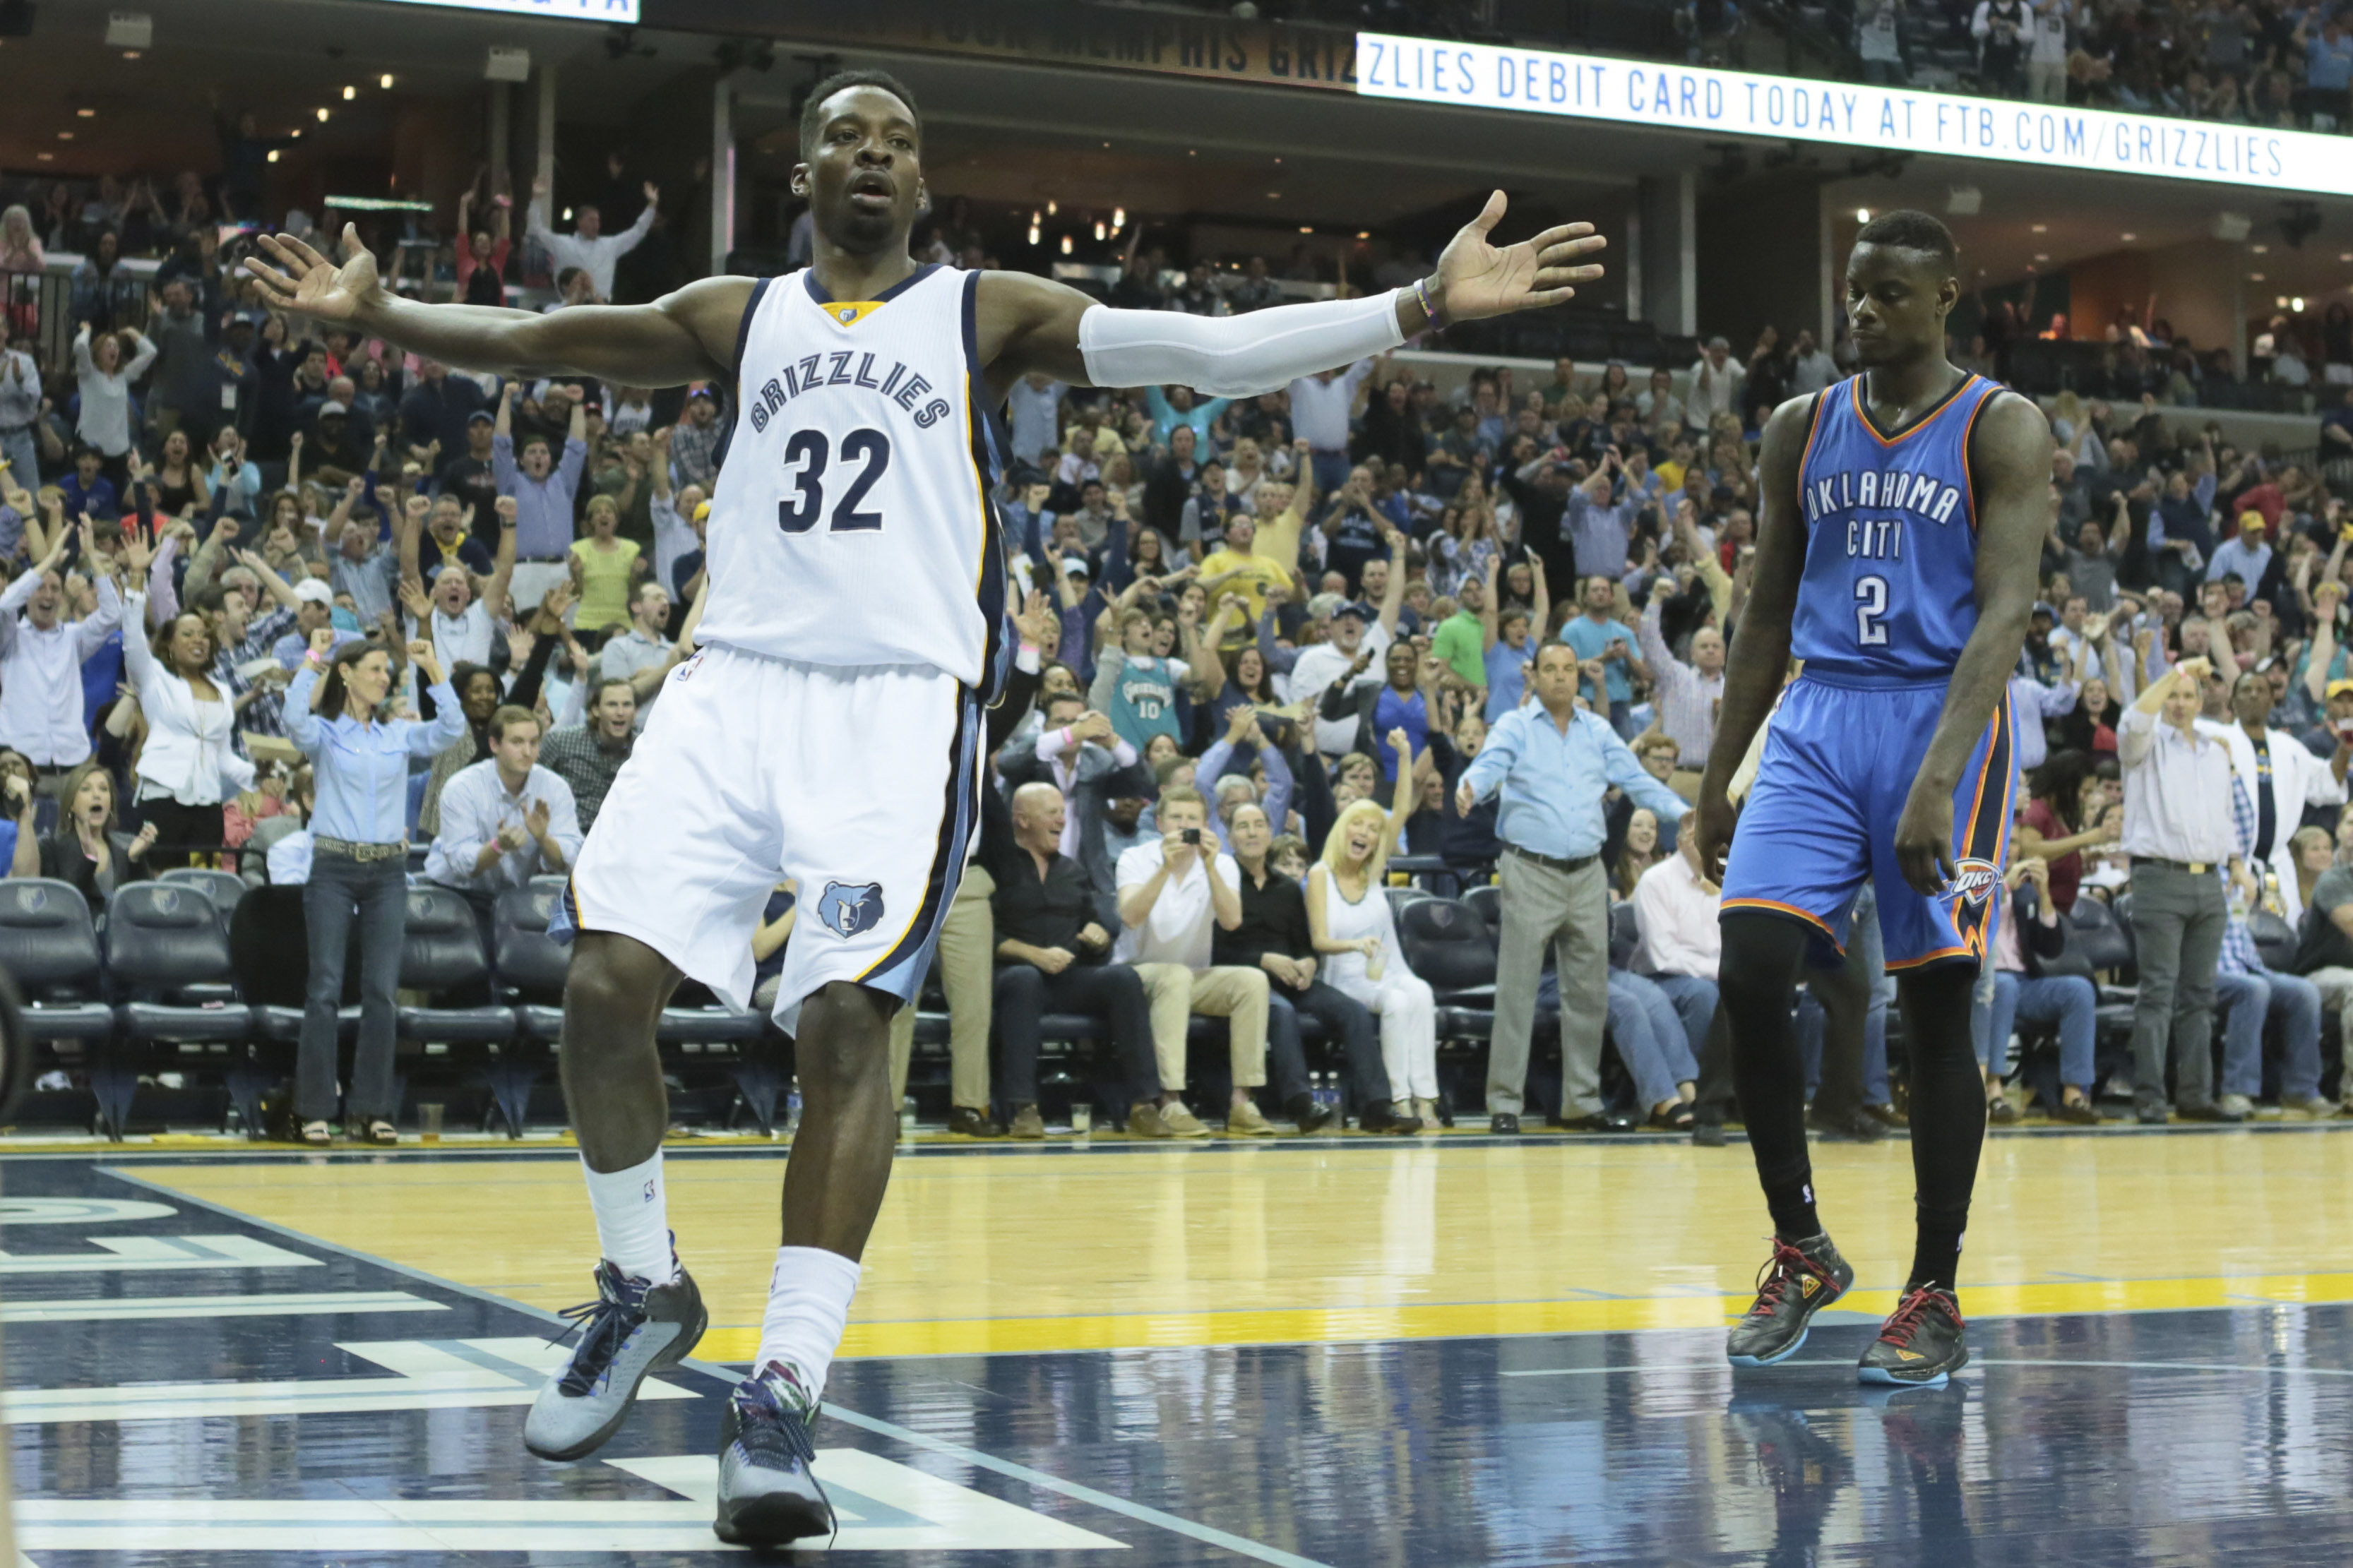 Jeff Green is hoping to entertain the Grizzlies faithful against the Portland Trail Blazers